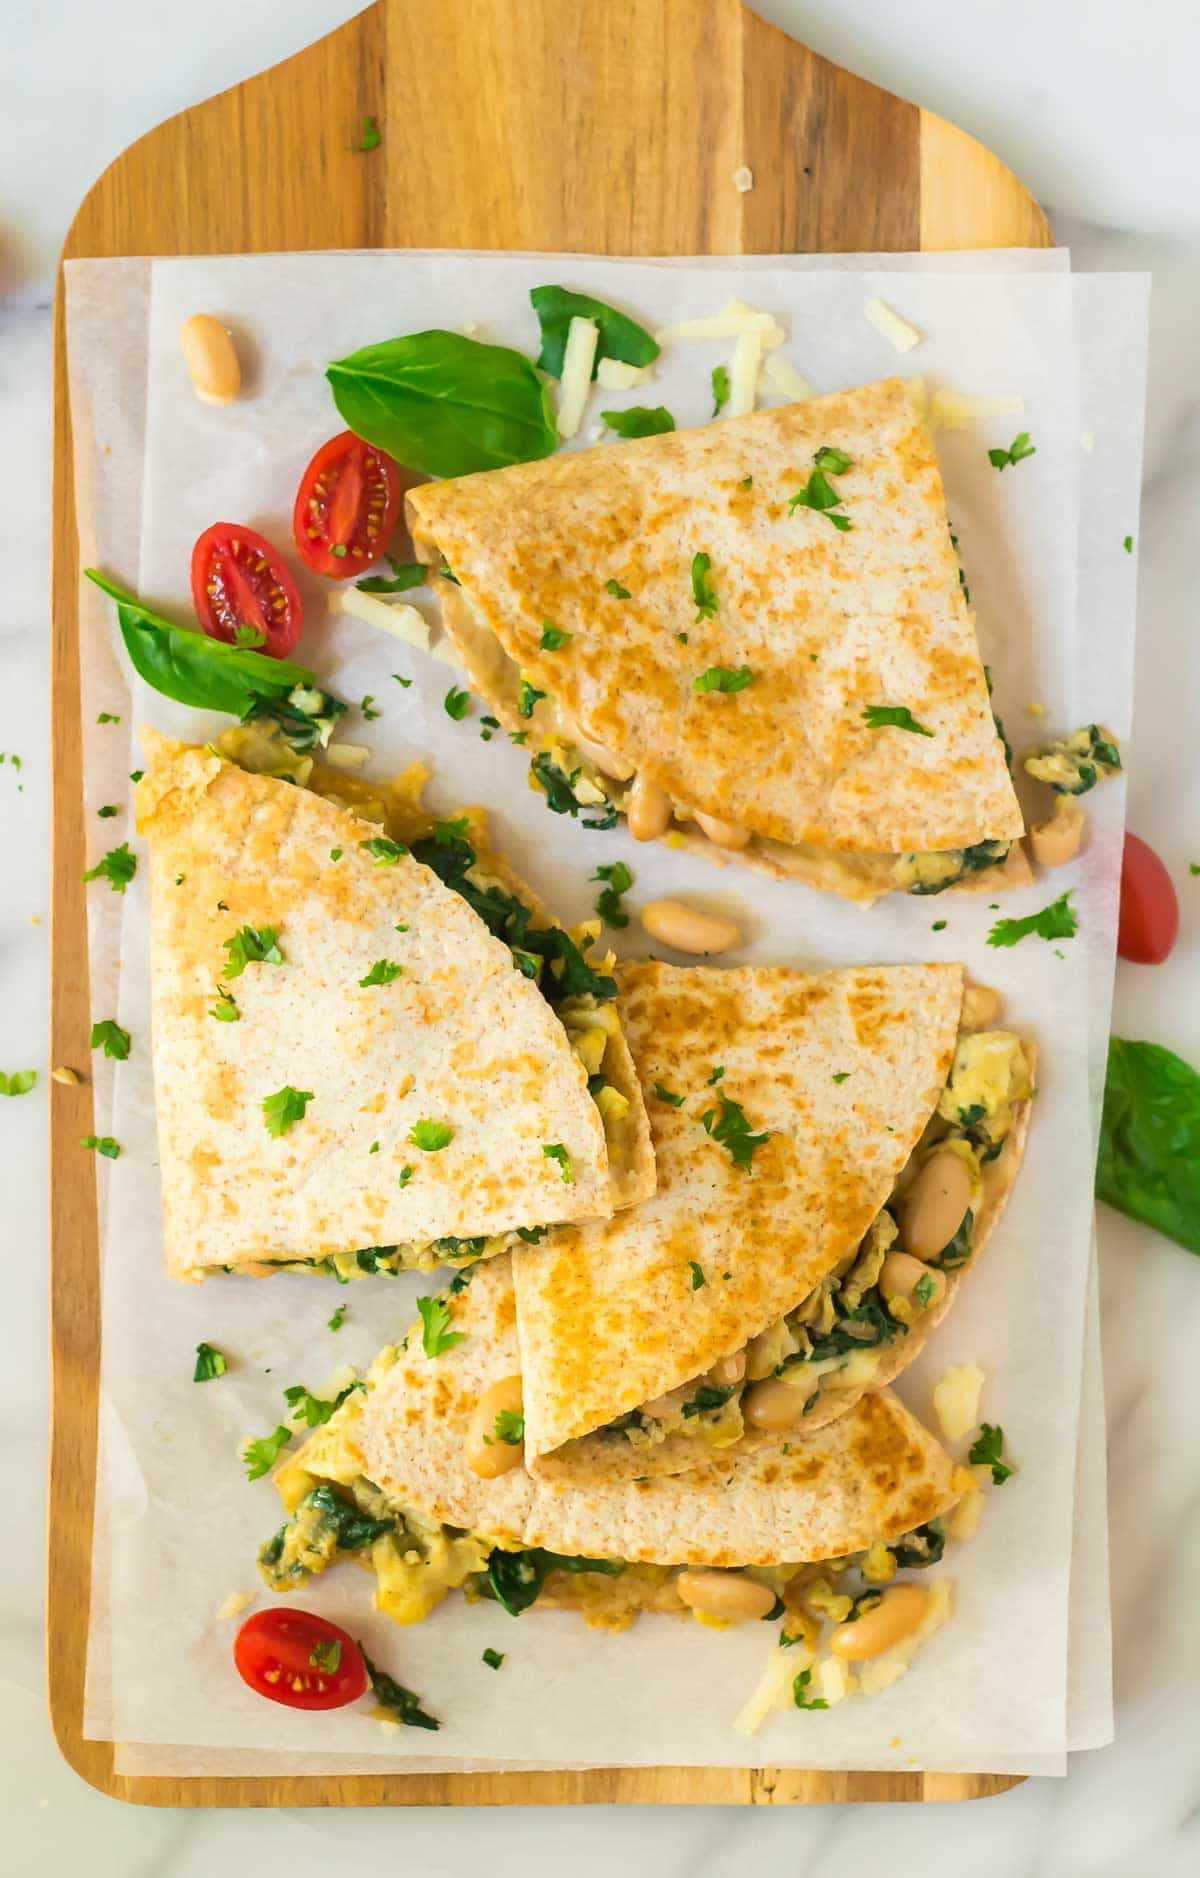 Breakfast To Go Recipes  Breakfast Quesadilla with Cheese Spinach and White Beans